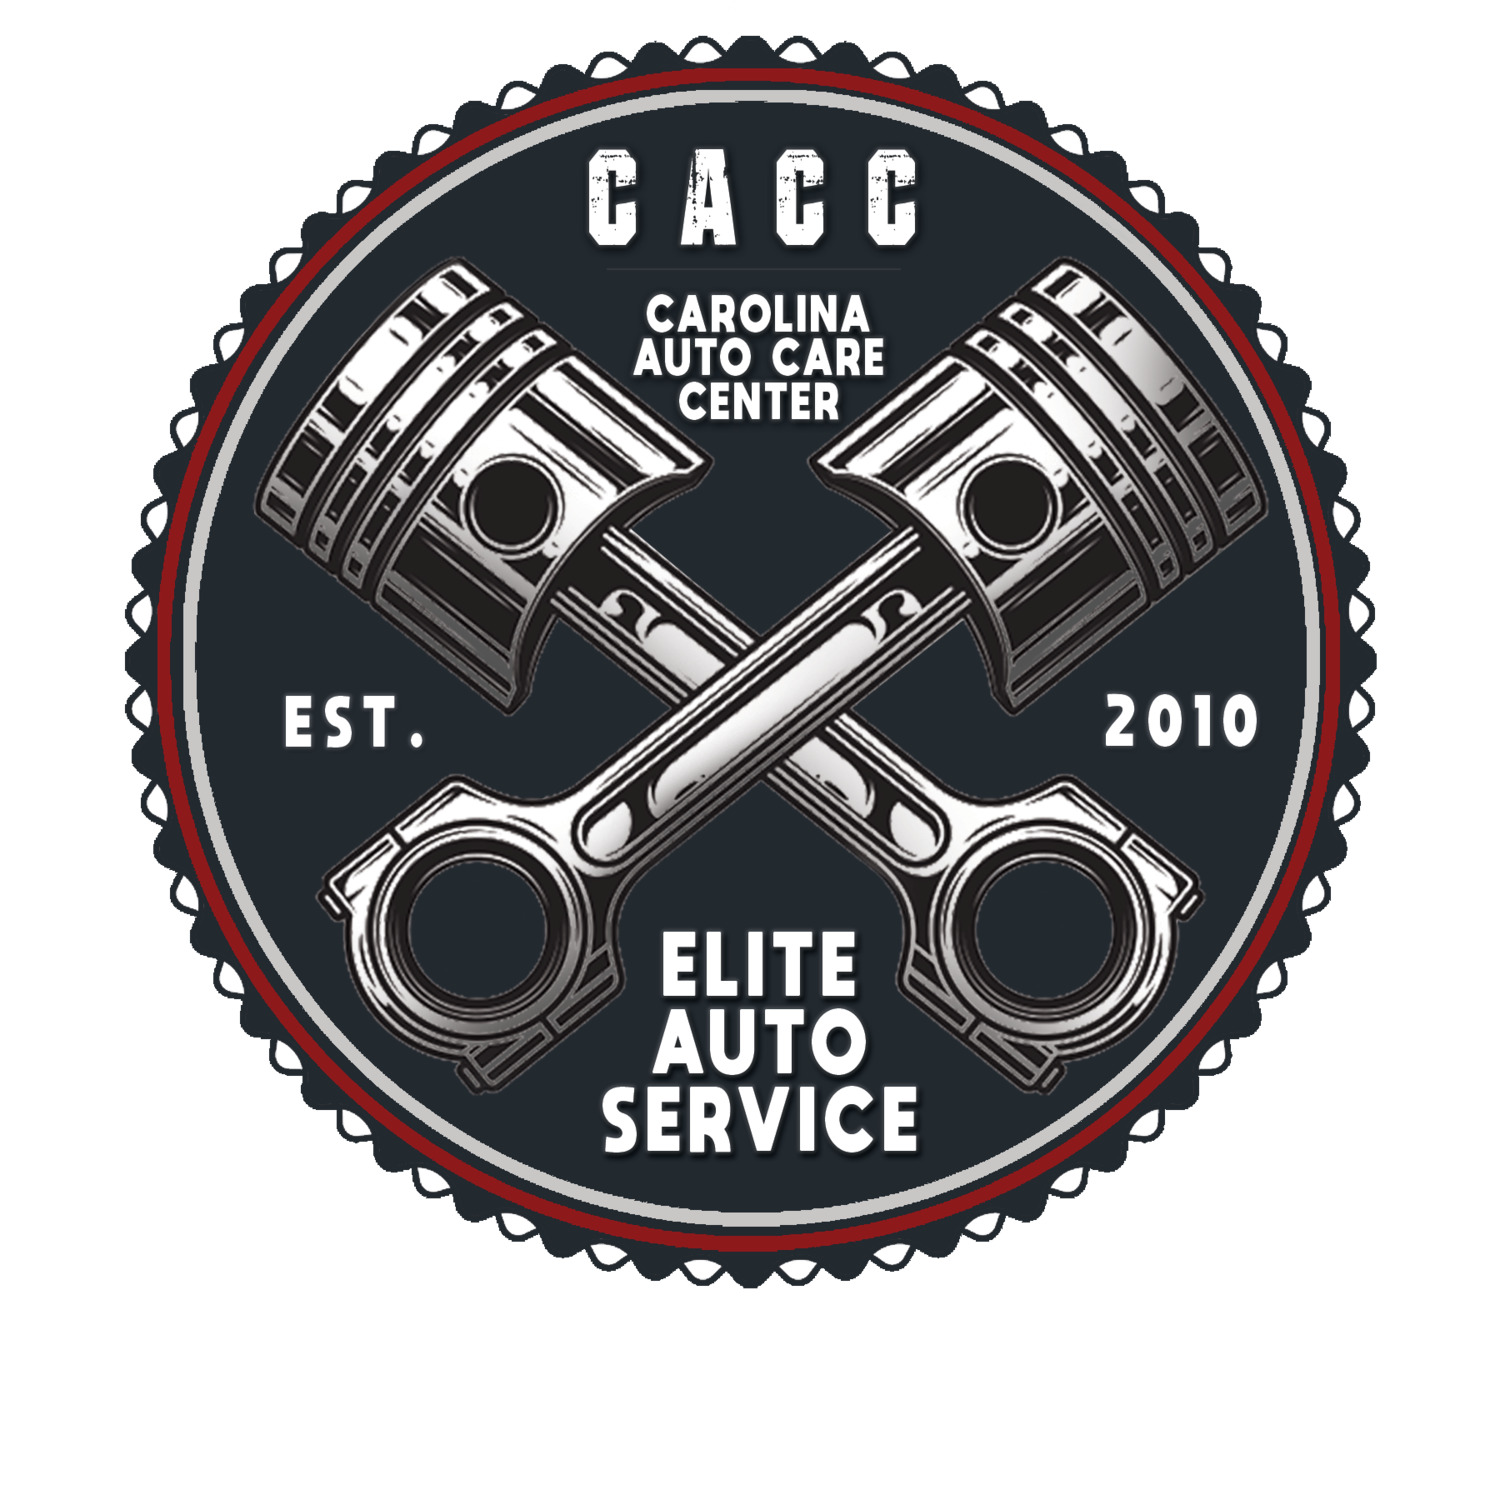 Carolina Auto Care Center